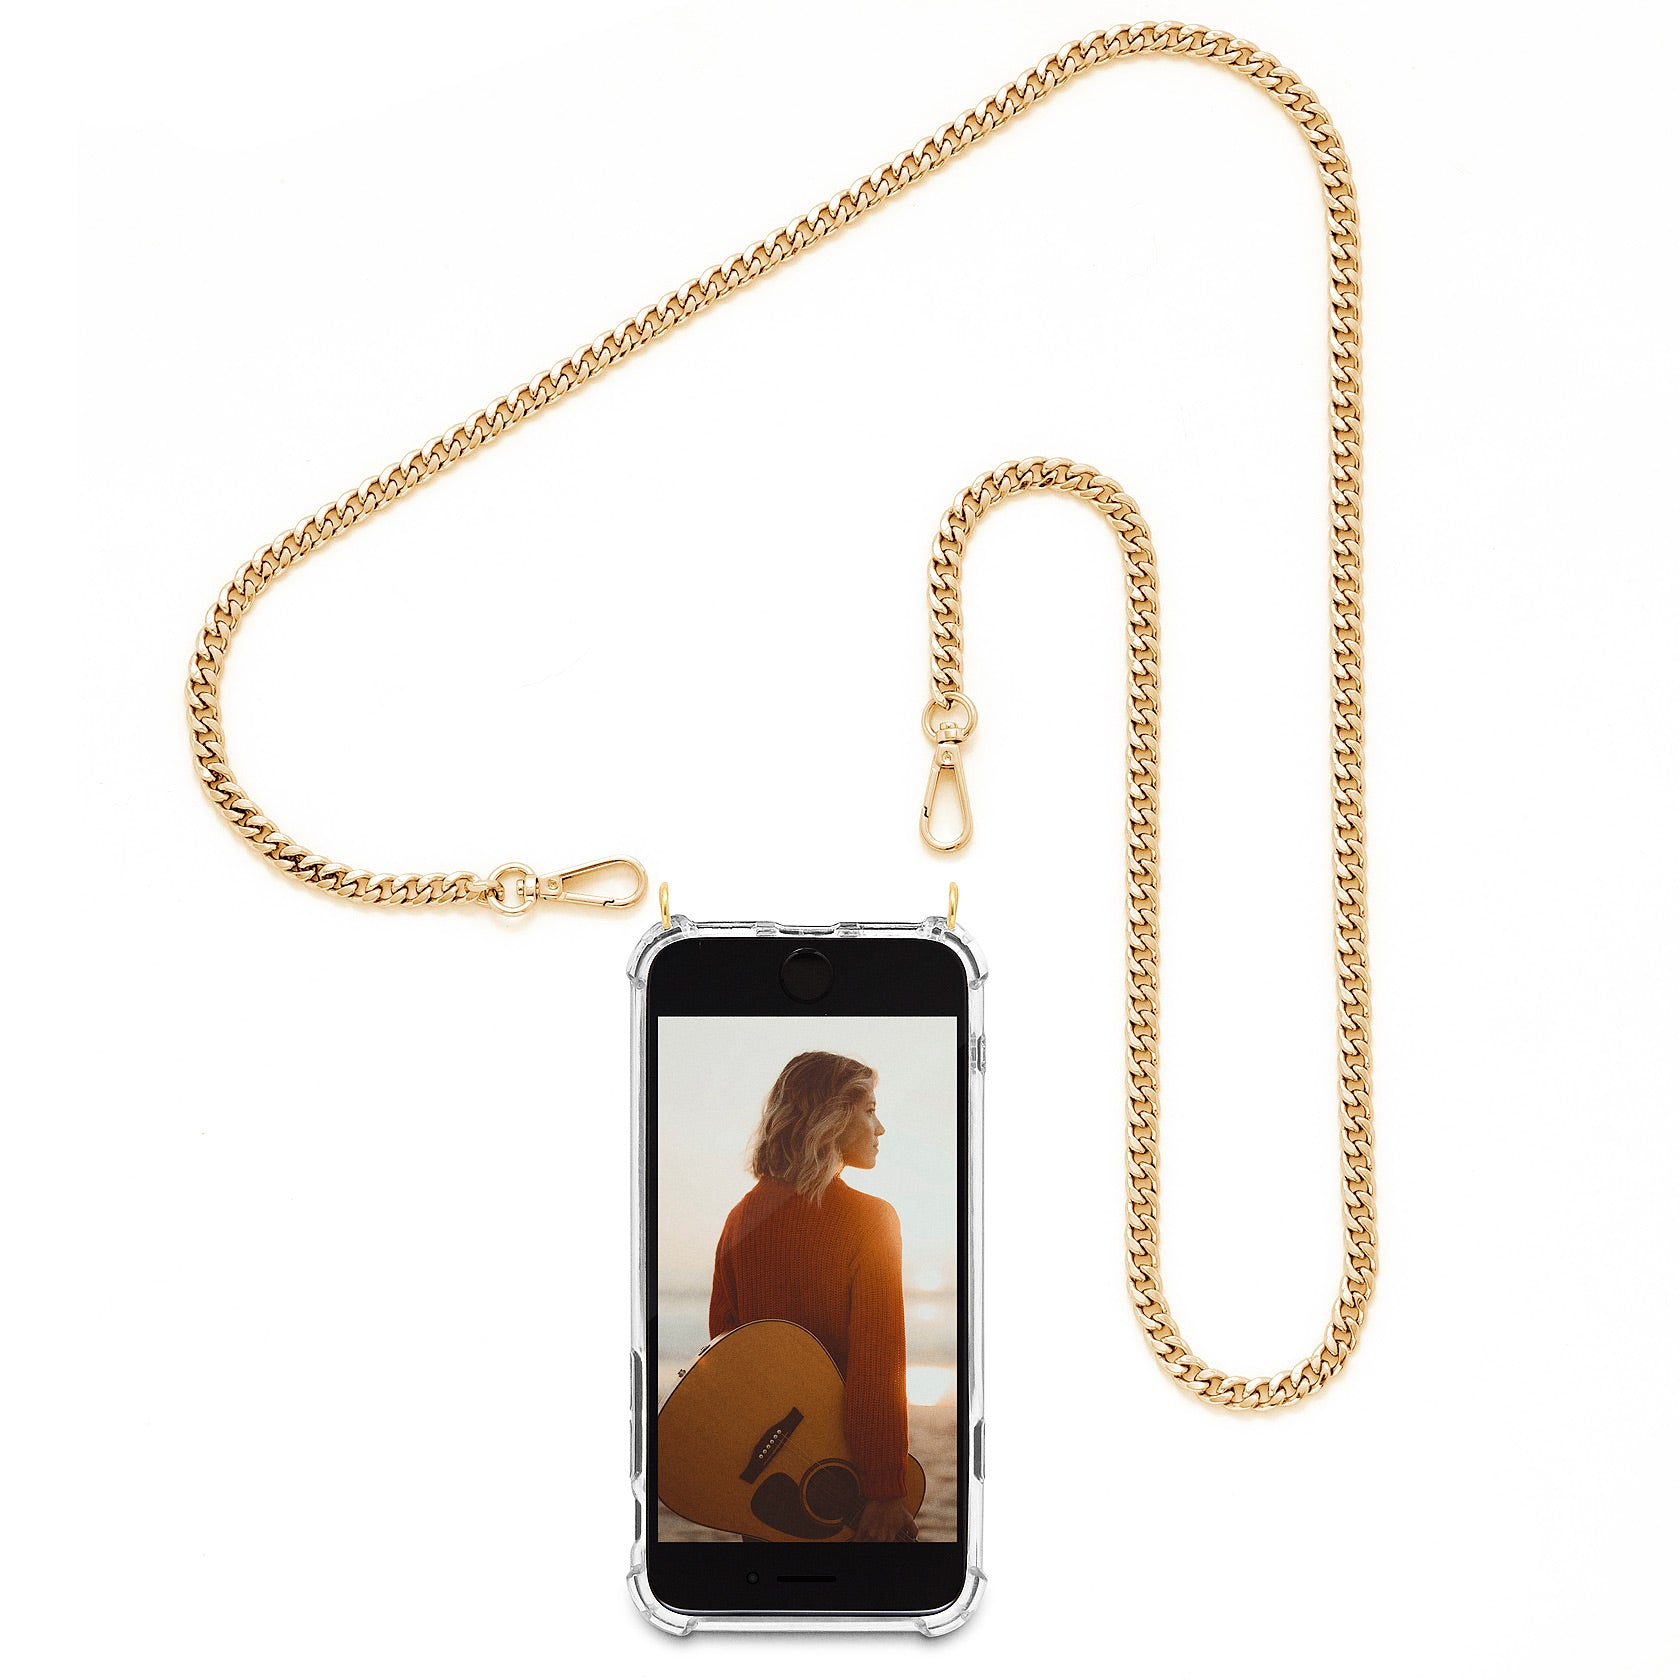 Cross Body Phone Case Necklace | N°9 GLAM GOLD | Cicerly